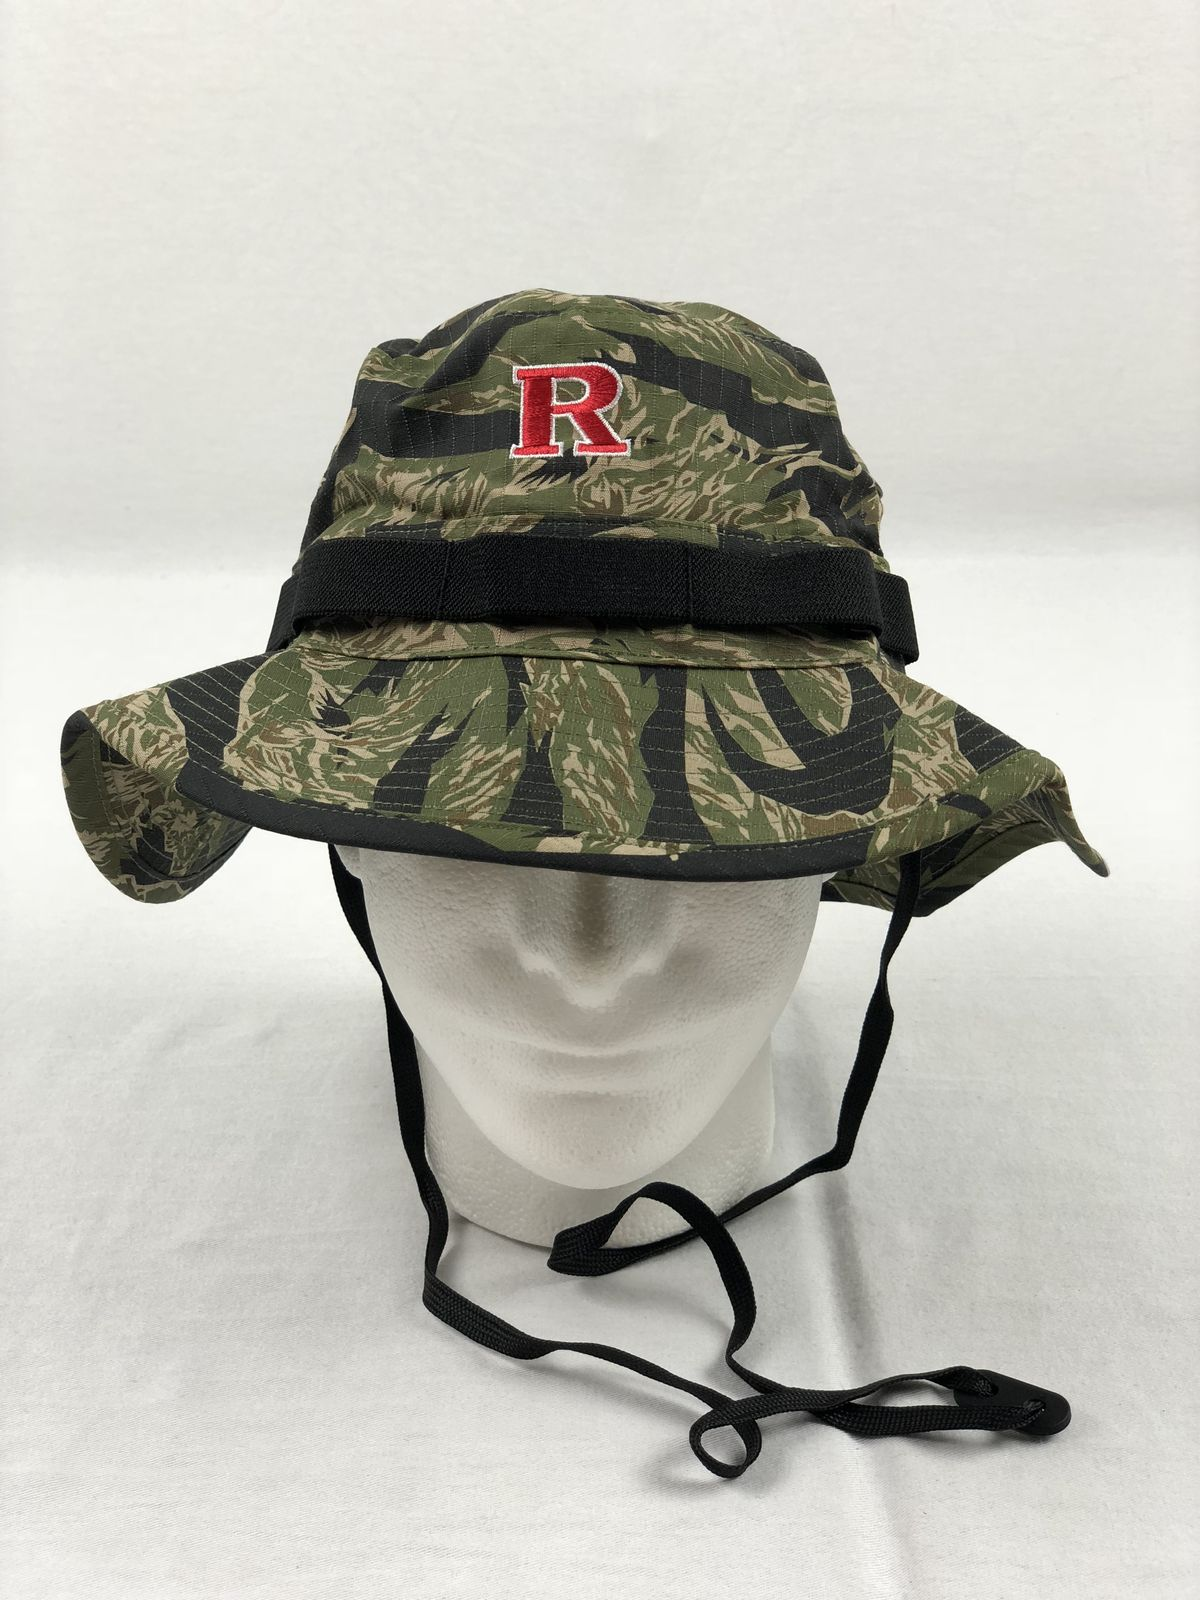 f0ddfd8d884 Details about NEW Nike Rutgers Scarlet Knights - Camo Bucket Hat (Multiple  Sizes)